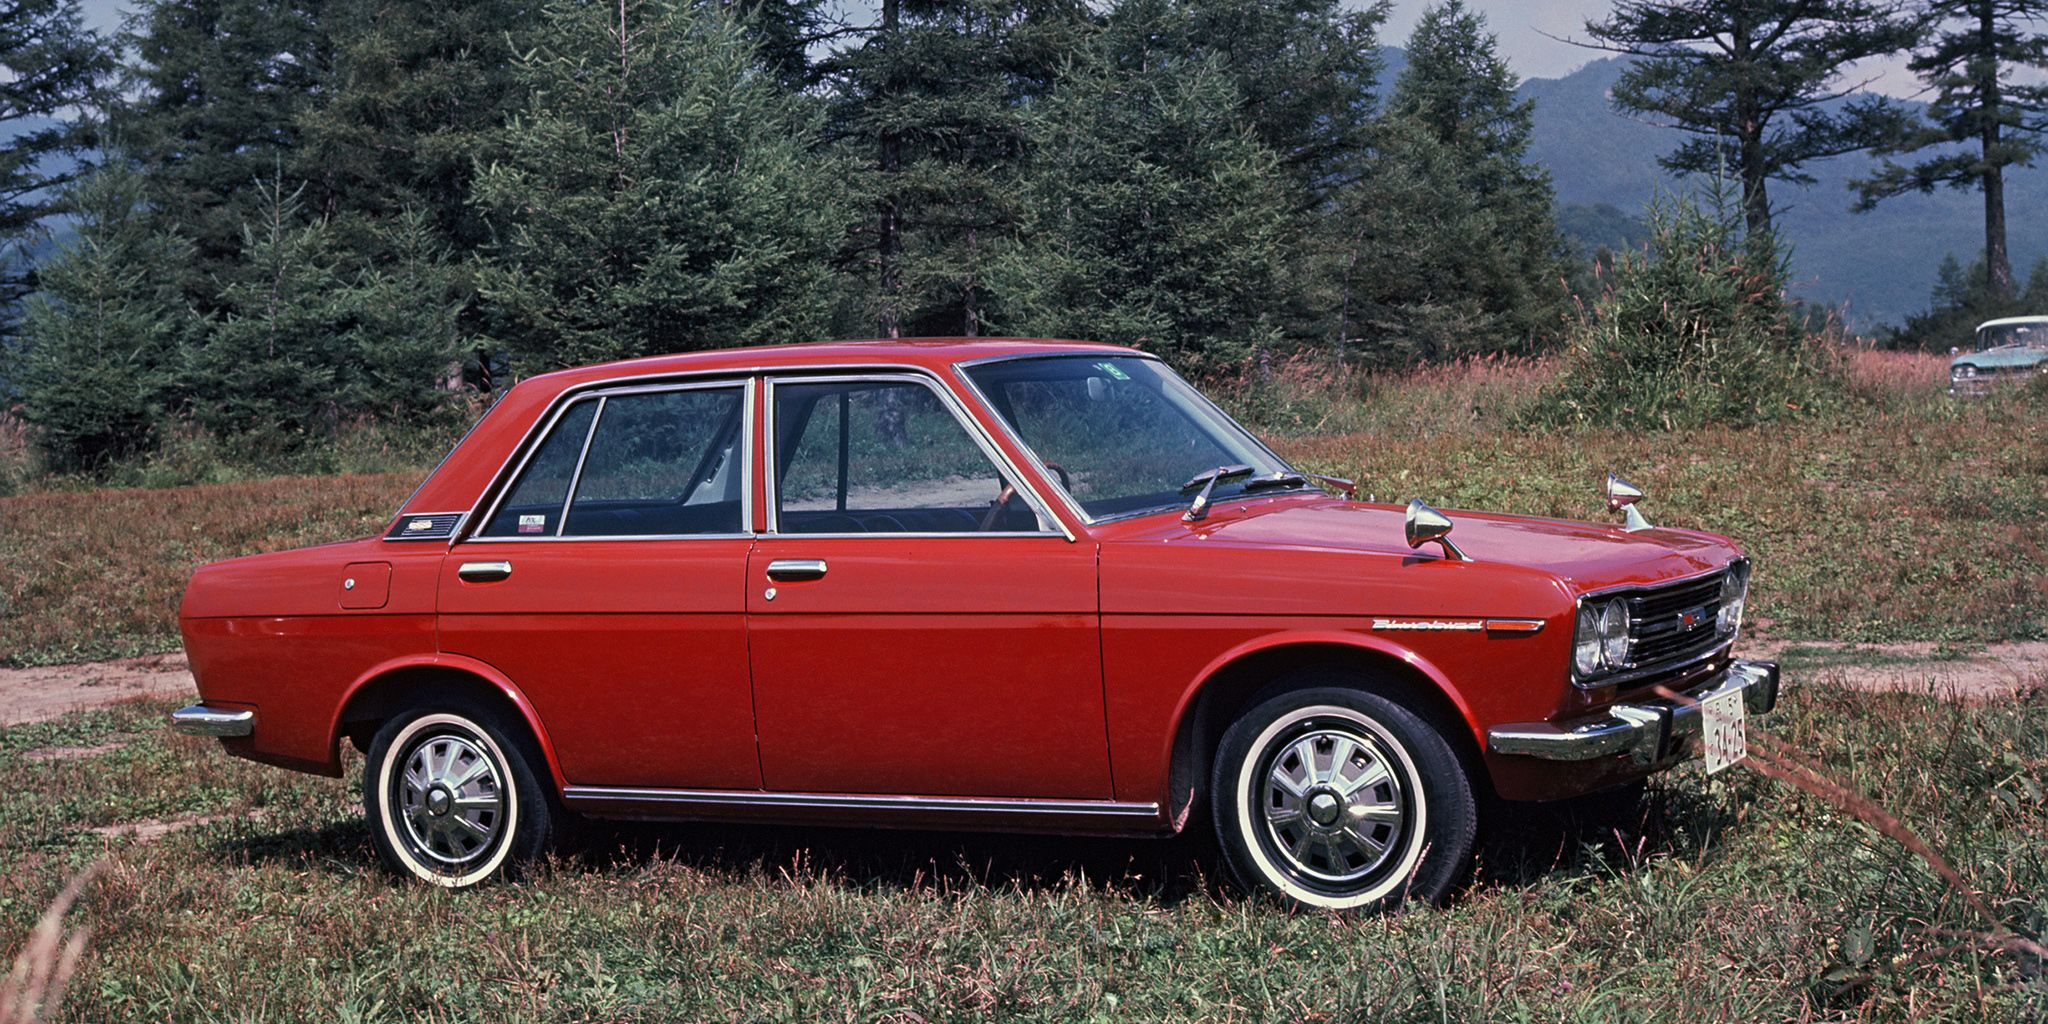 Cheap Classic Cars - Best Classics for a Collector on a Budget